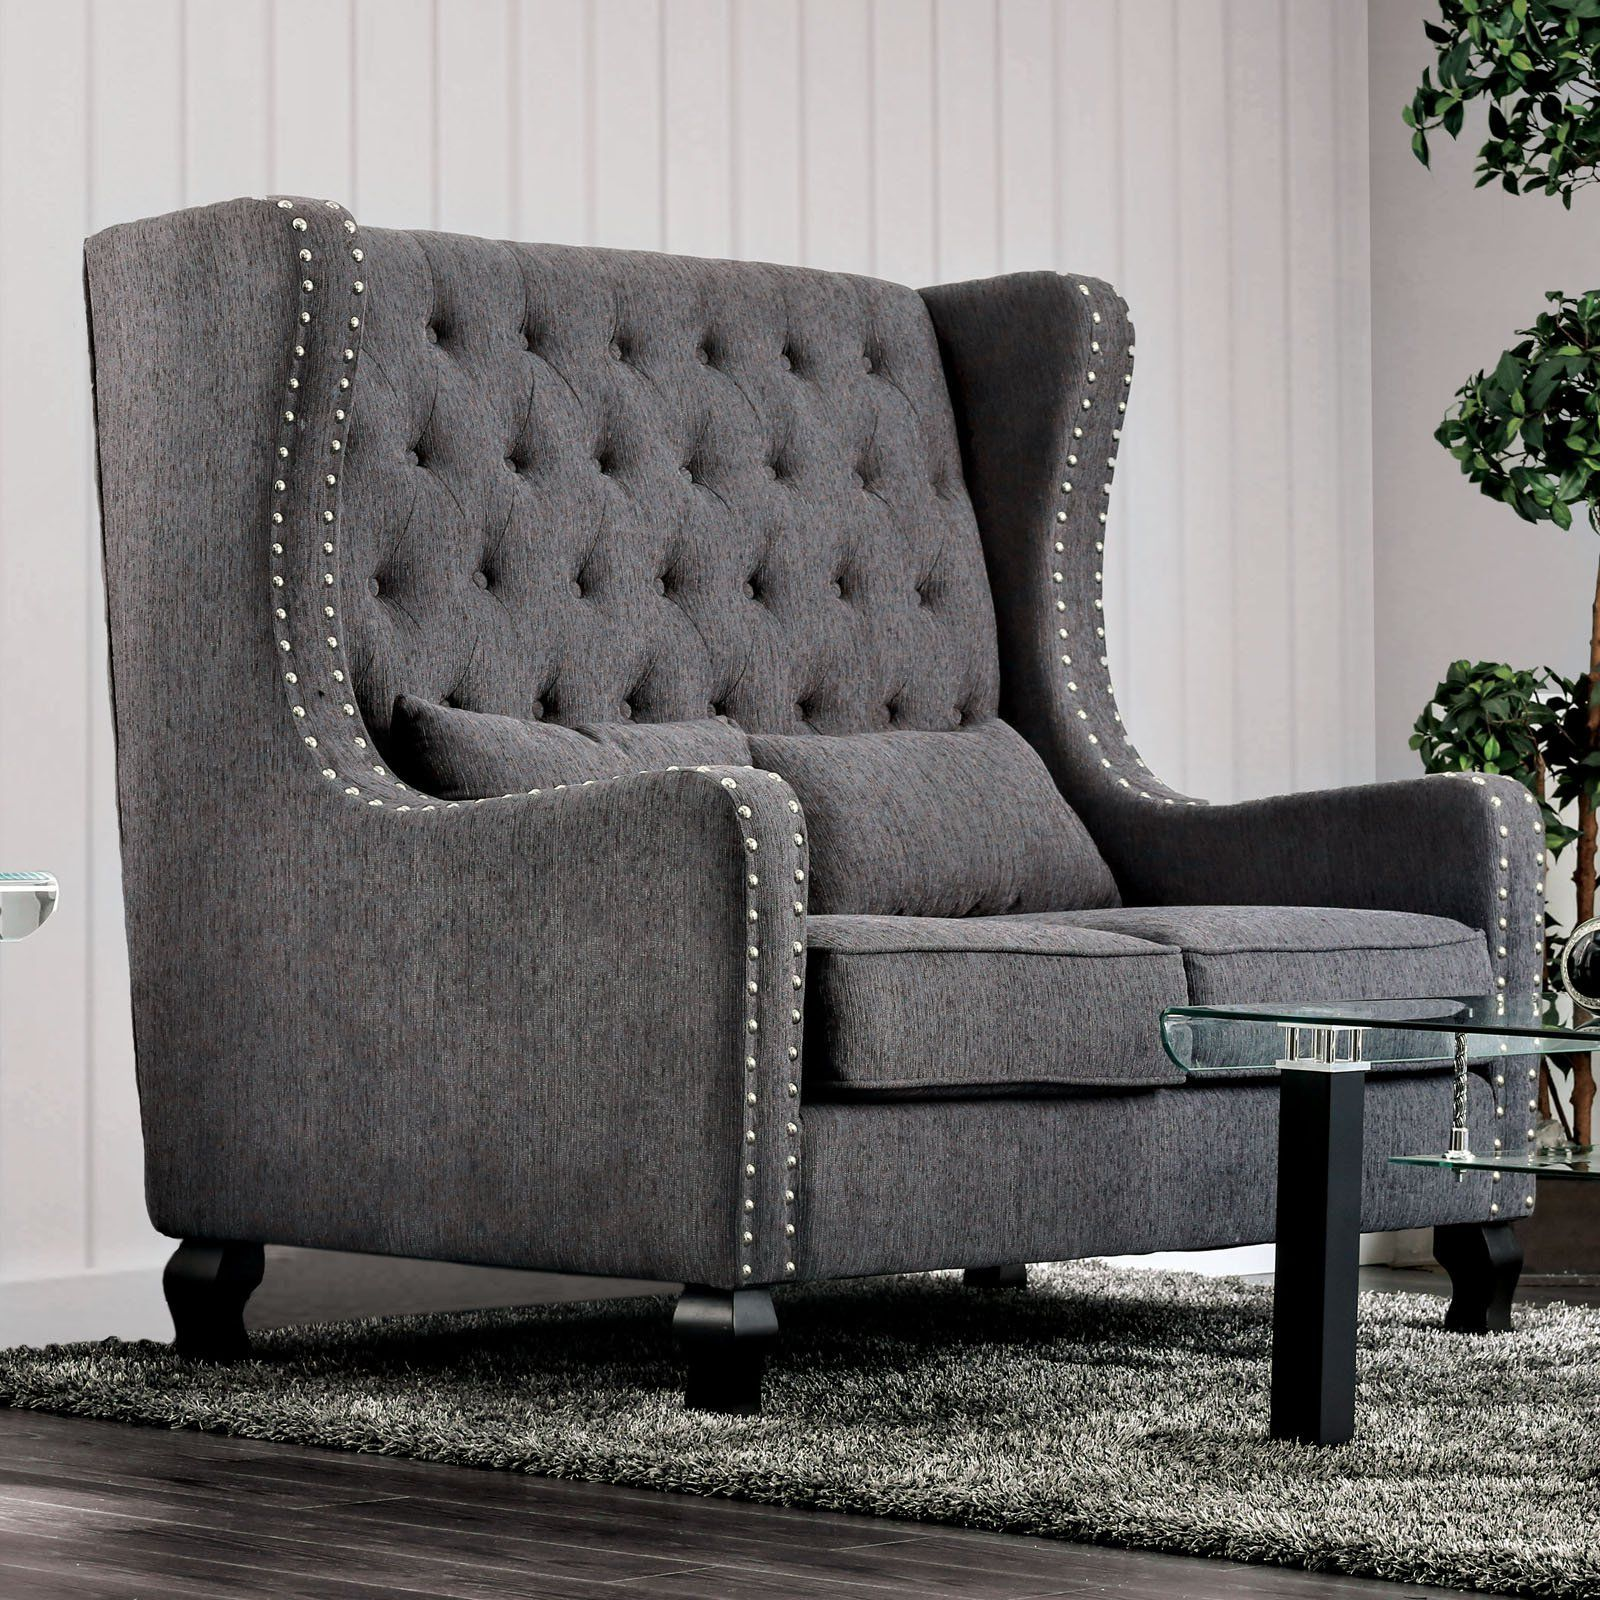 Incredible Furniture Of America Melony Wing Back Loveseat Gray In 2019 Ibusinesslaw Wood Chair Design Ideas Ibusinesslaworg